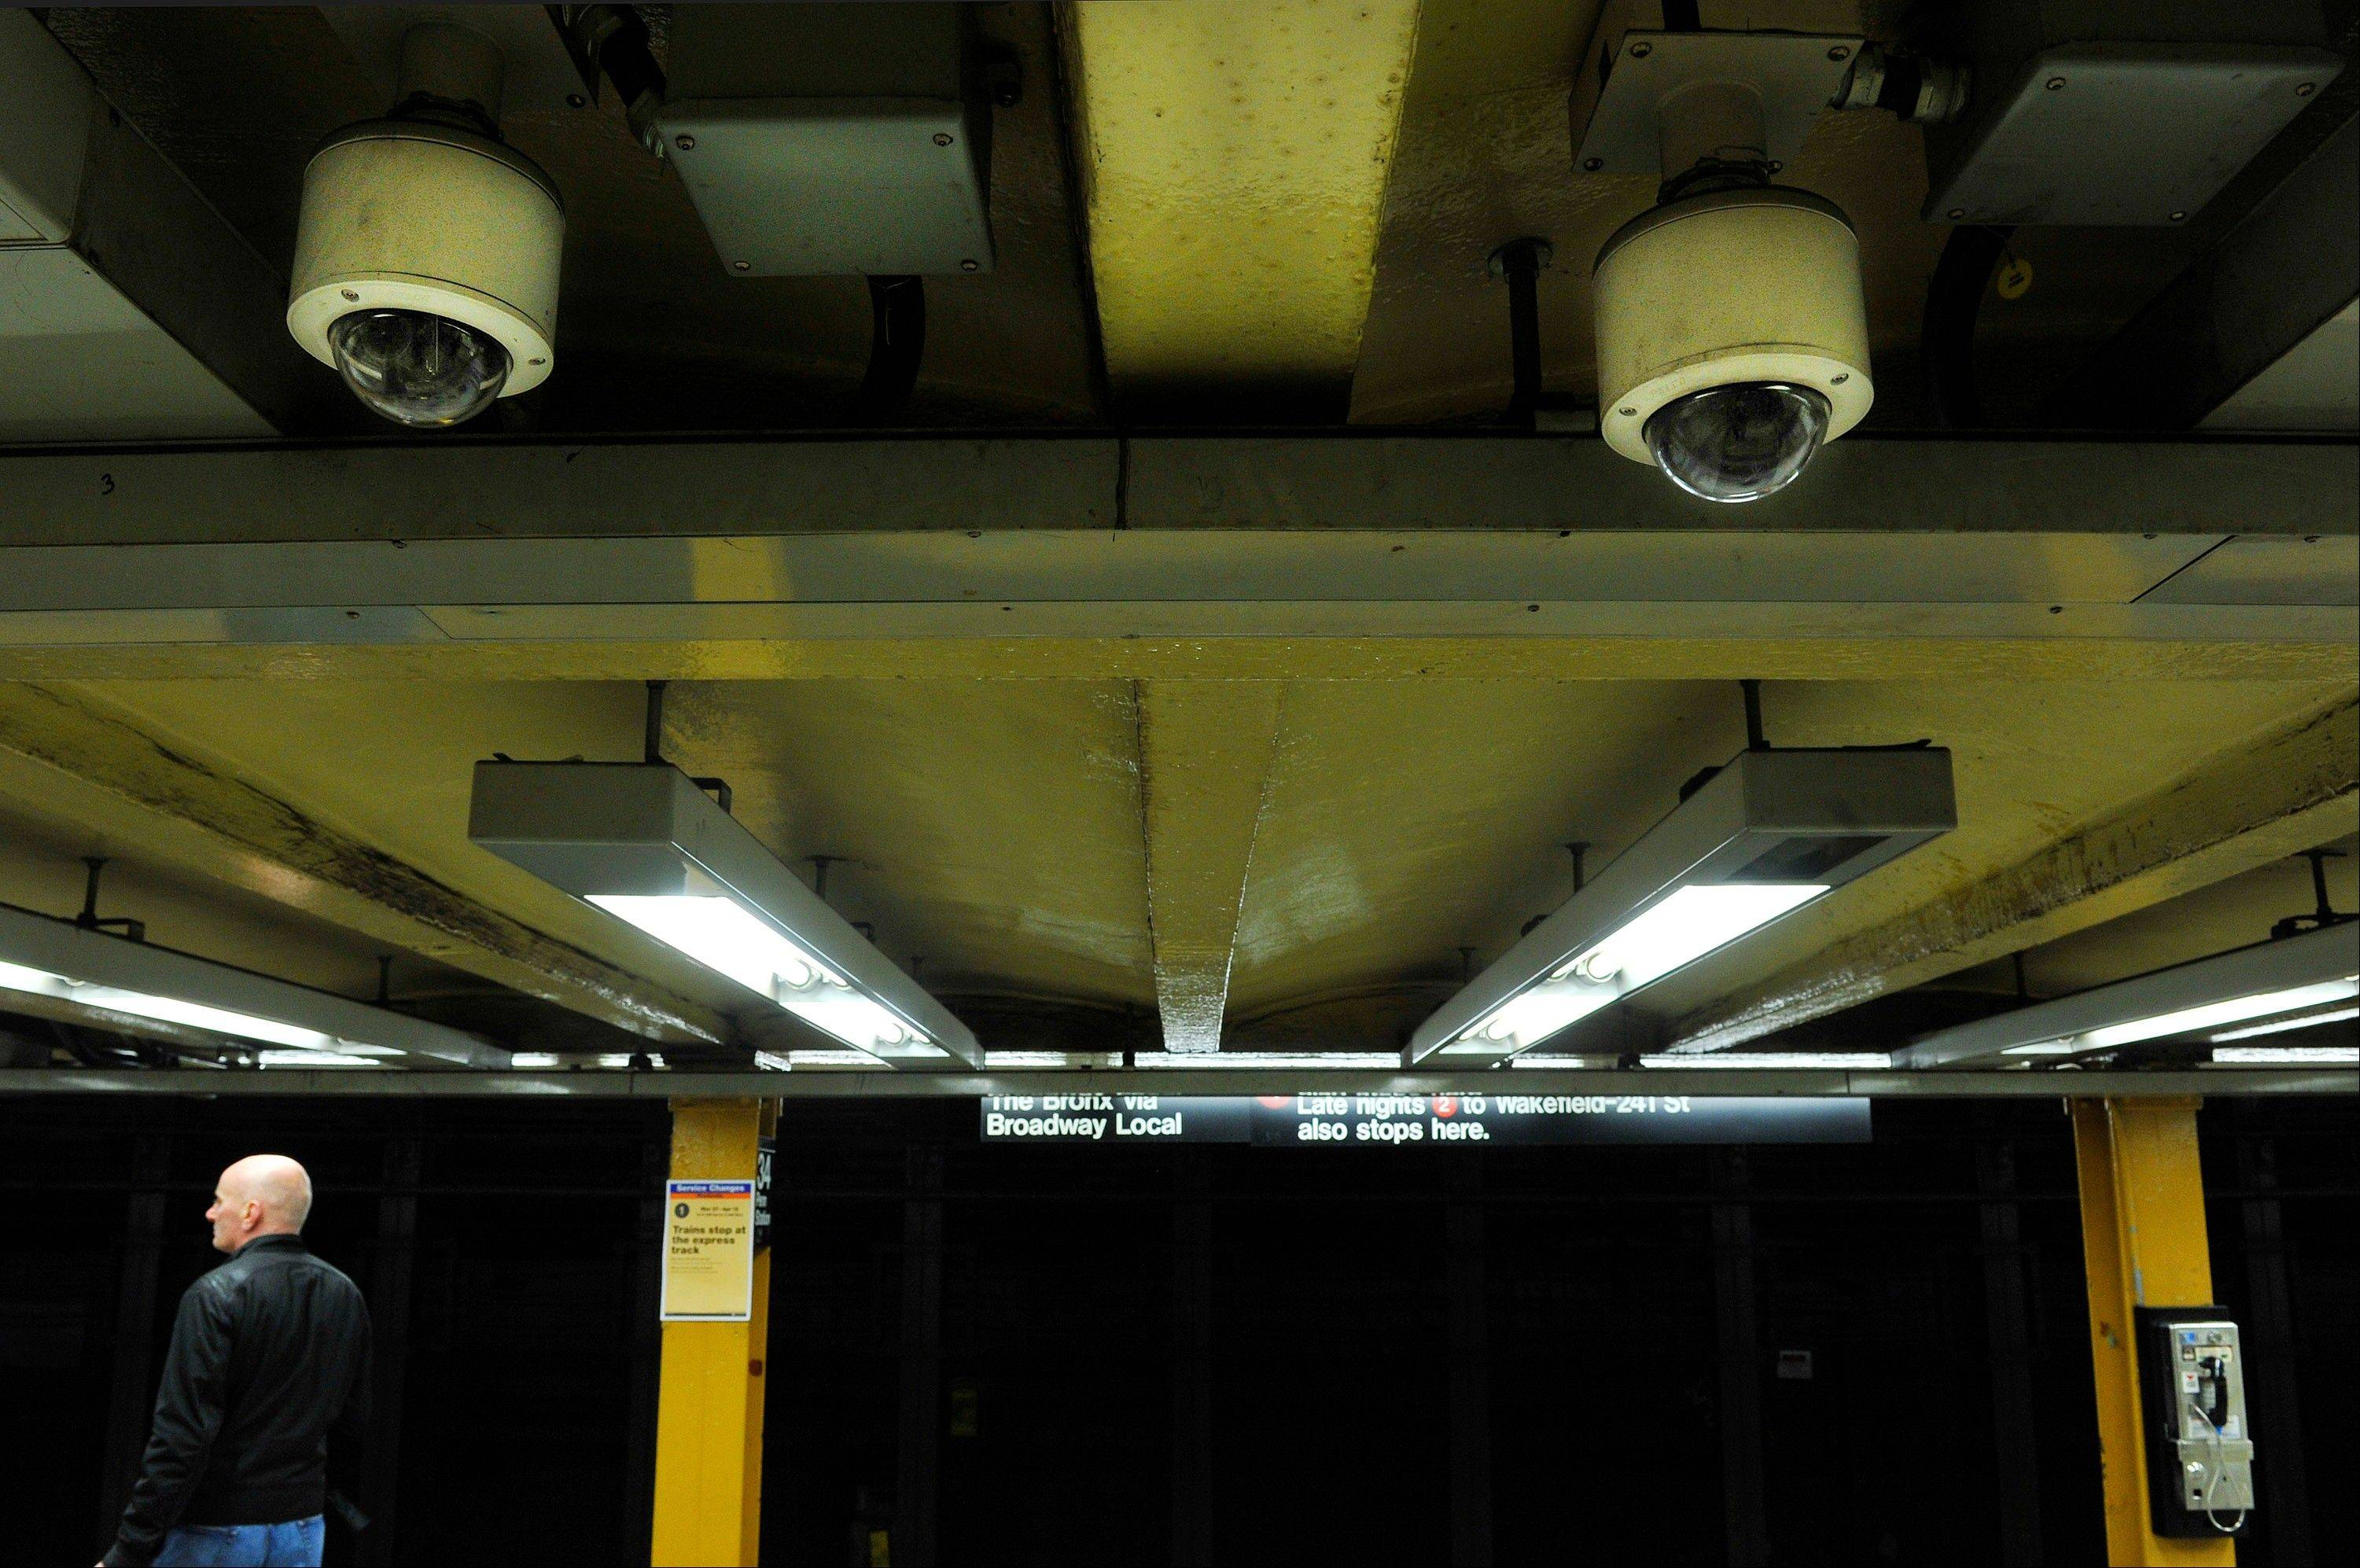 Two ceiling-mounted video surveillance cameras watch as a man awaits the arrival of a No. 1 subway train at the 34th Street station, in New York.